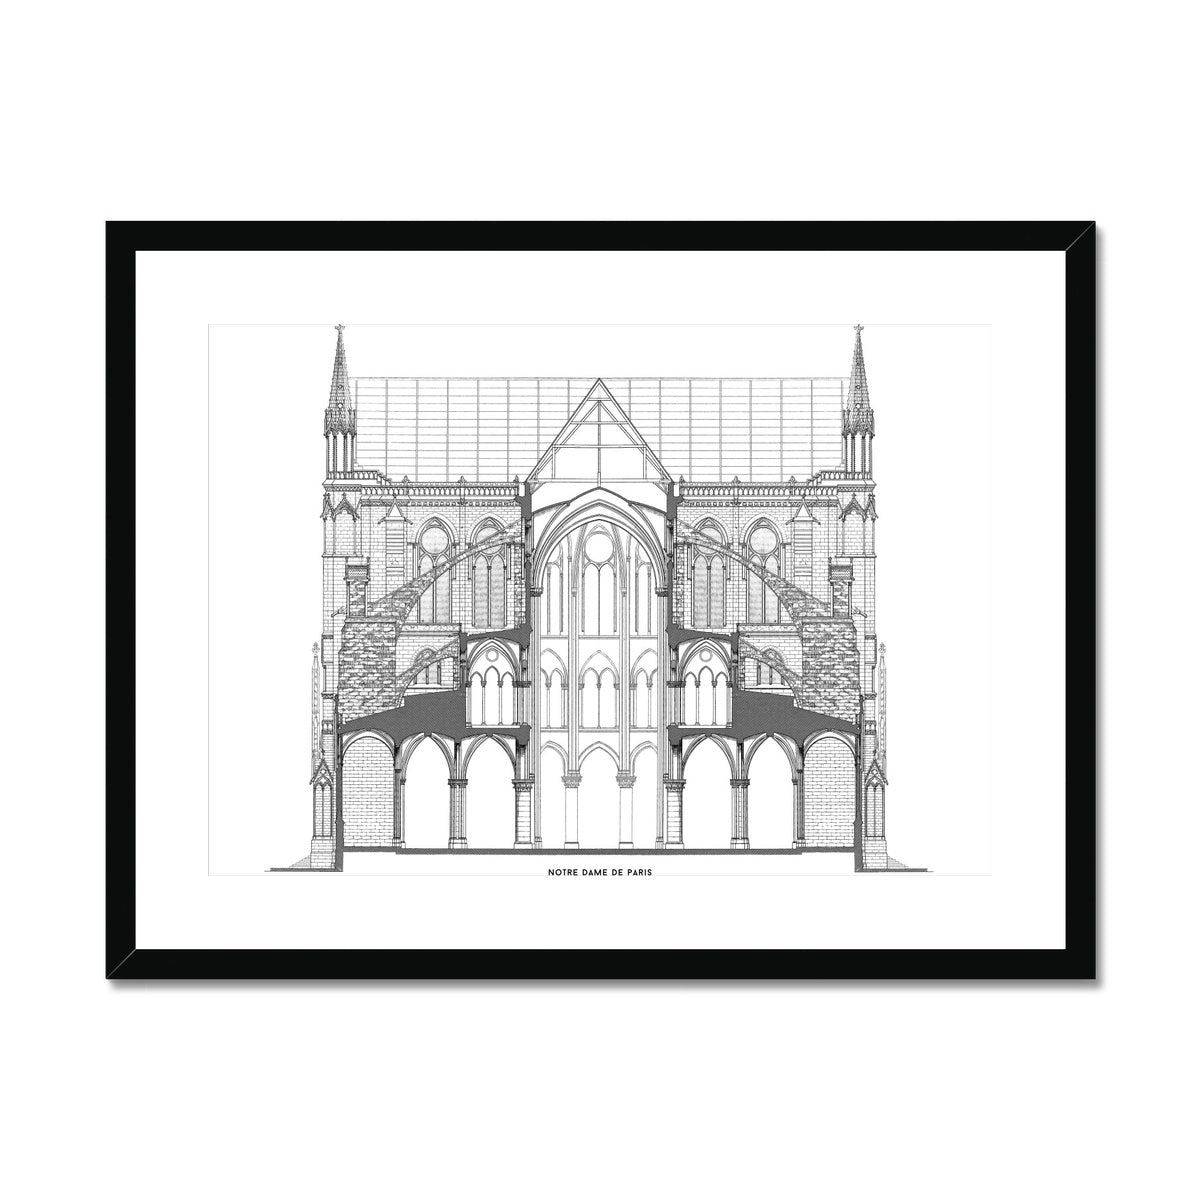 Notre Dame de Paris - Full Cross Section - White -  Framed & Mounted Print